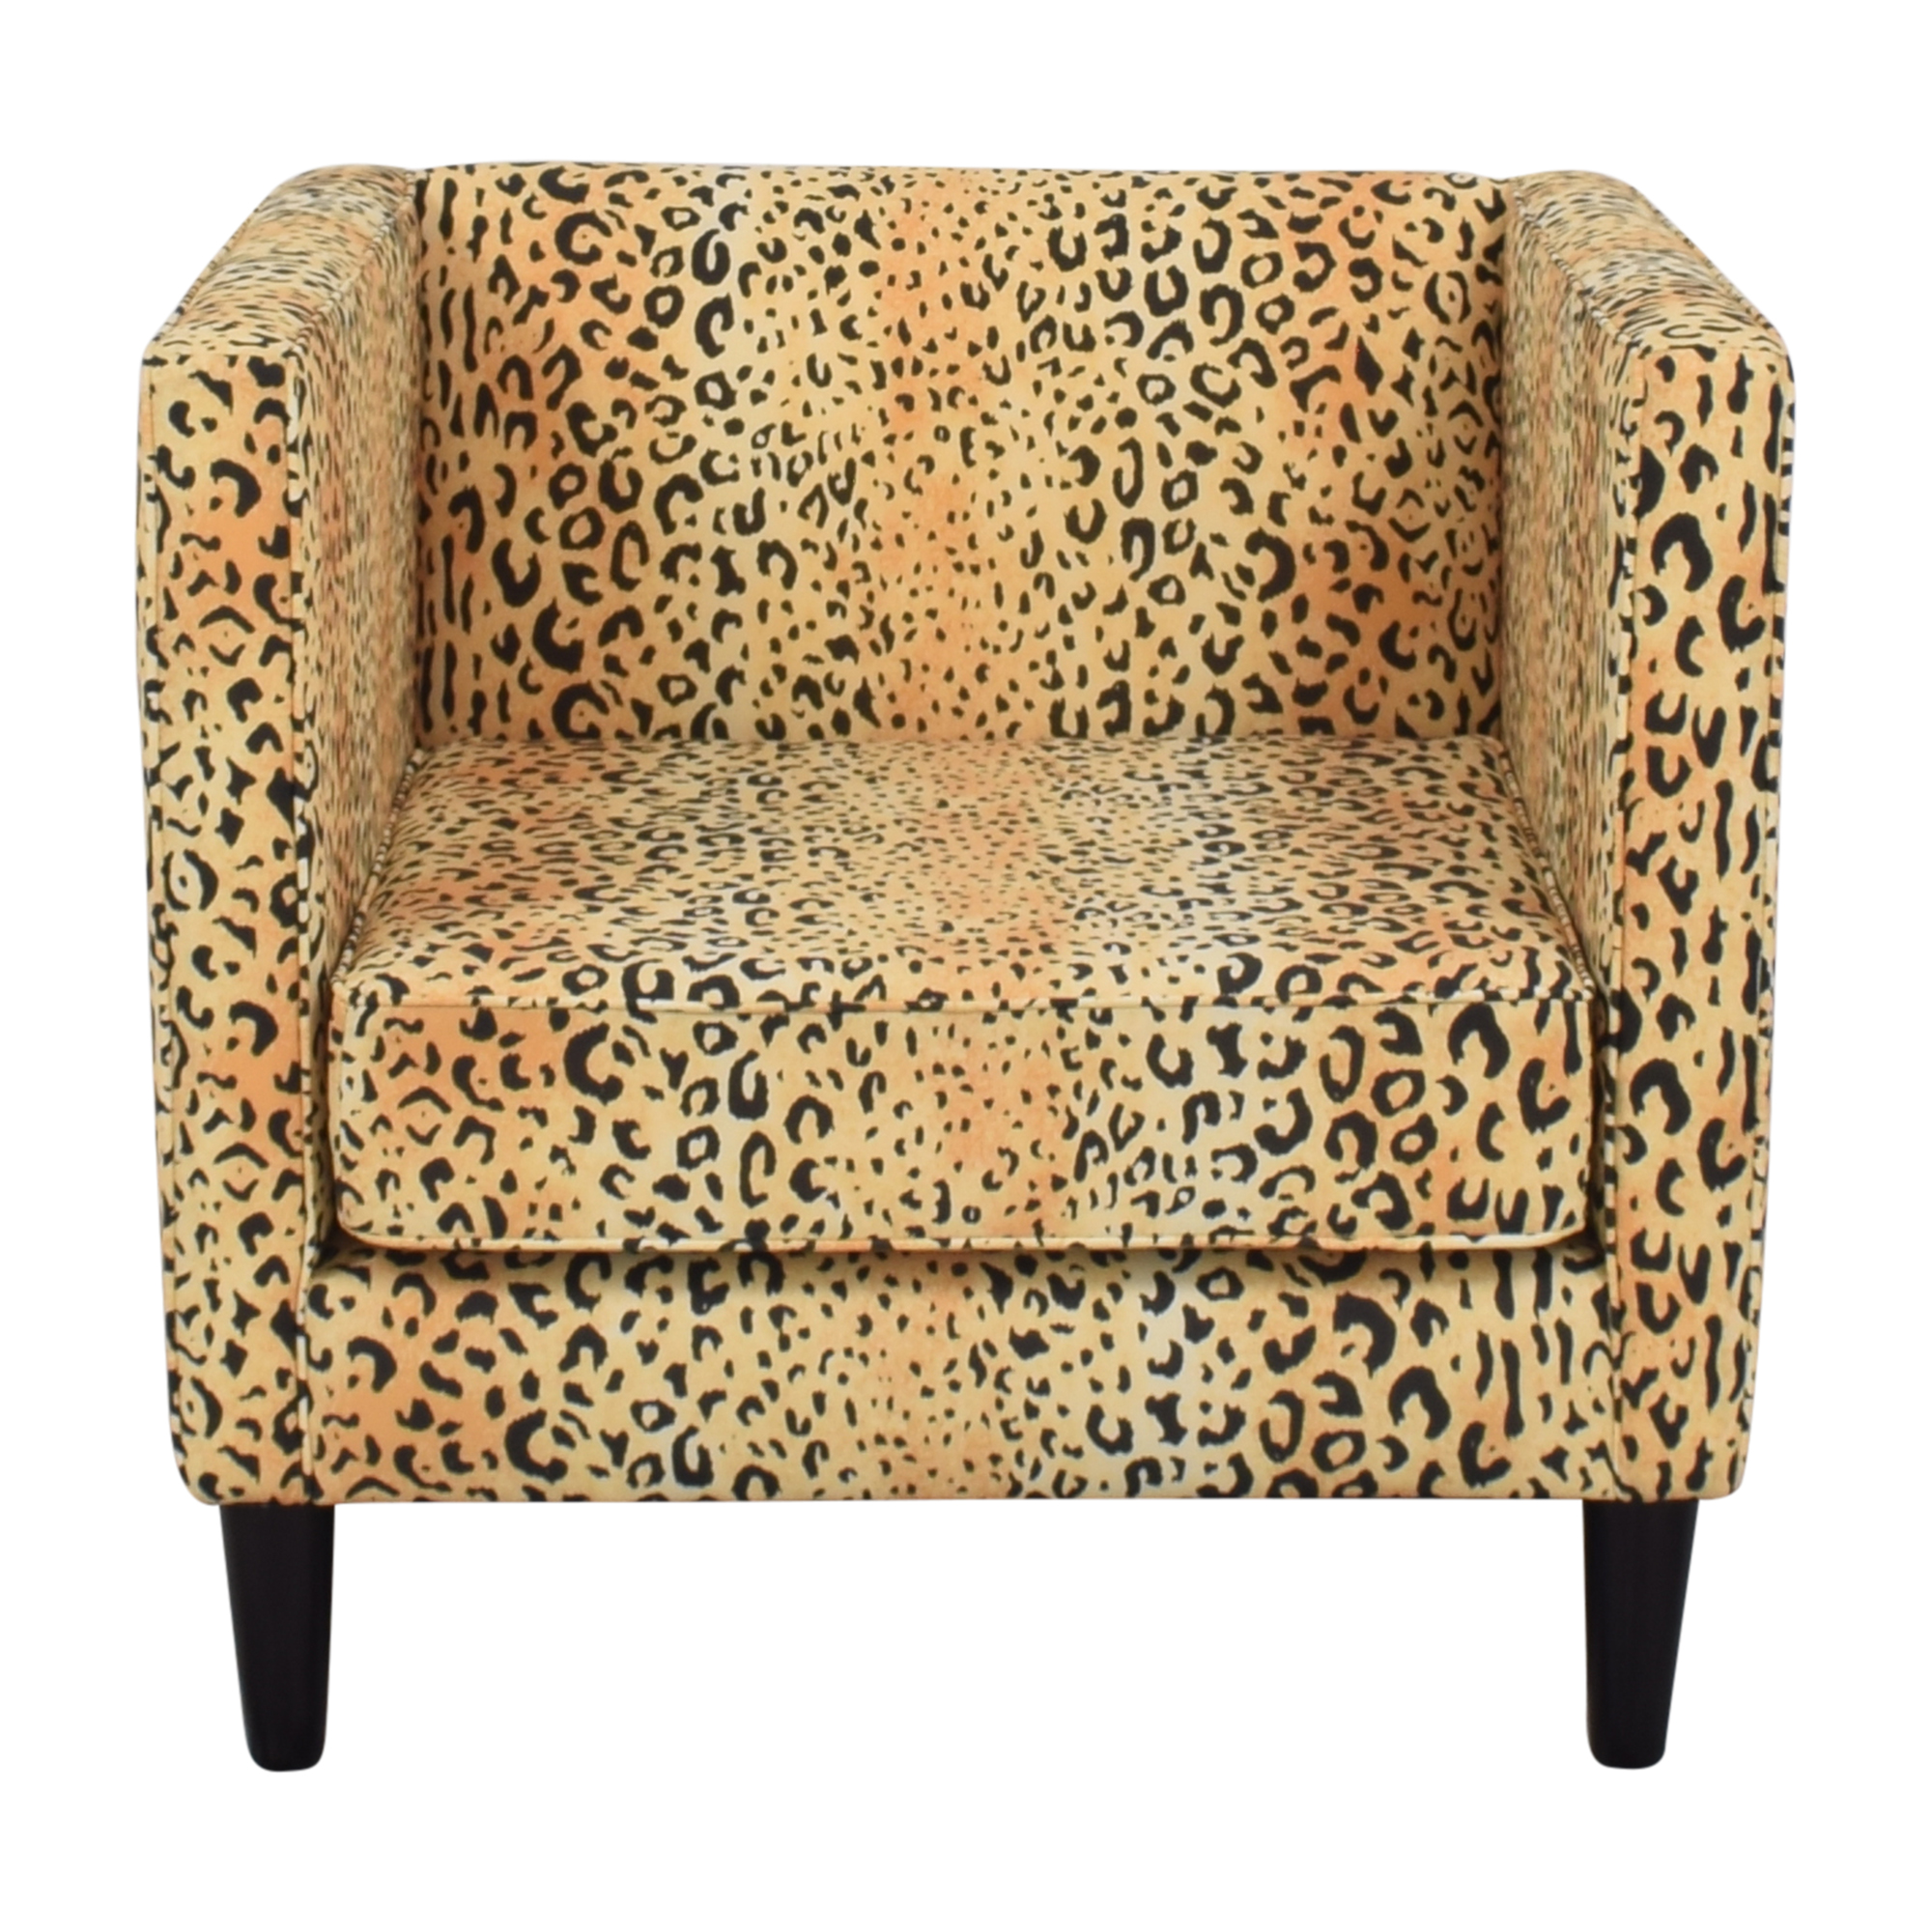 shop The Inside The Inside Tuxedo Chair in Leopard Print online